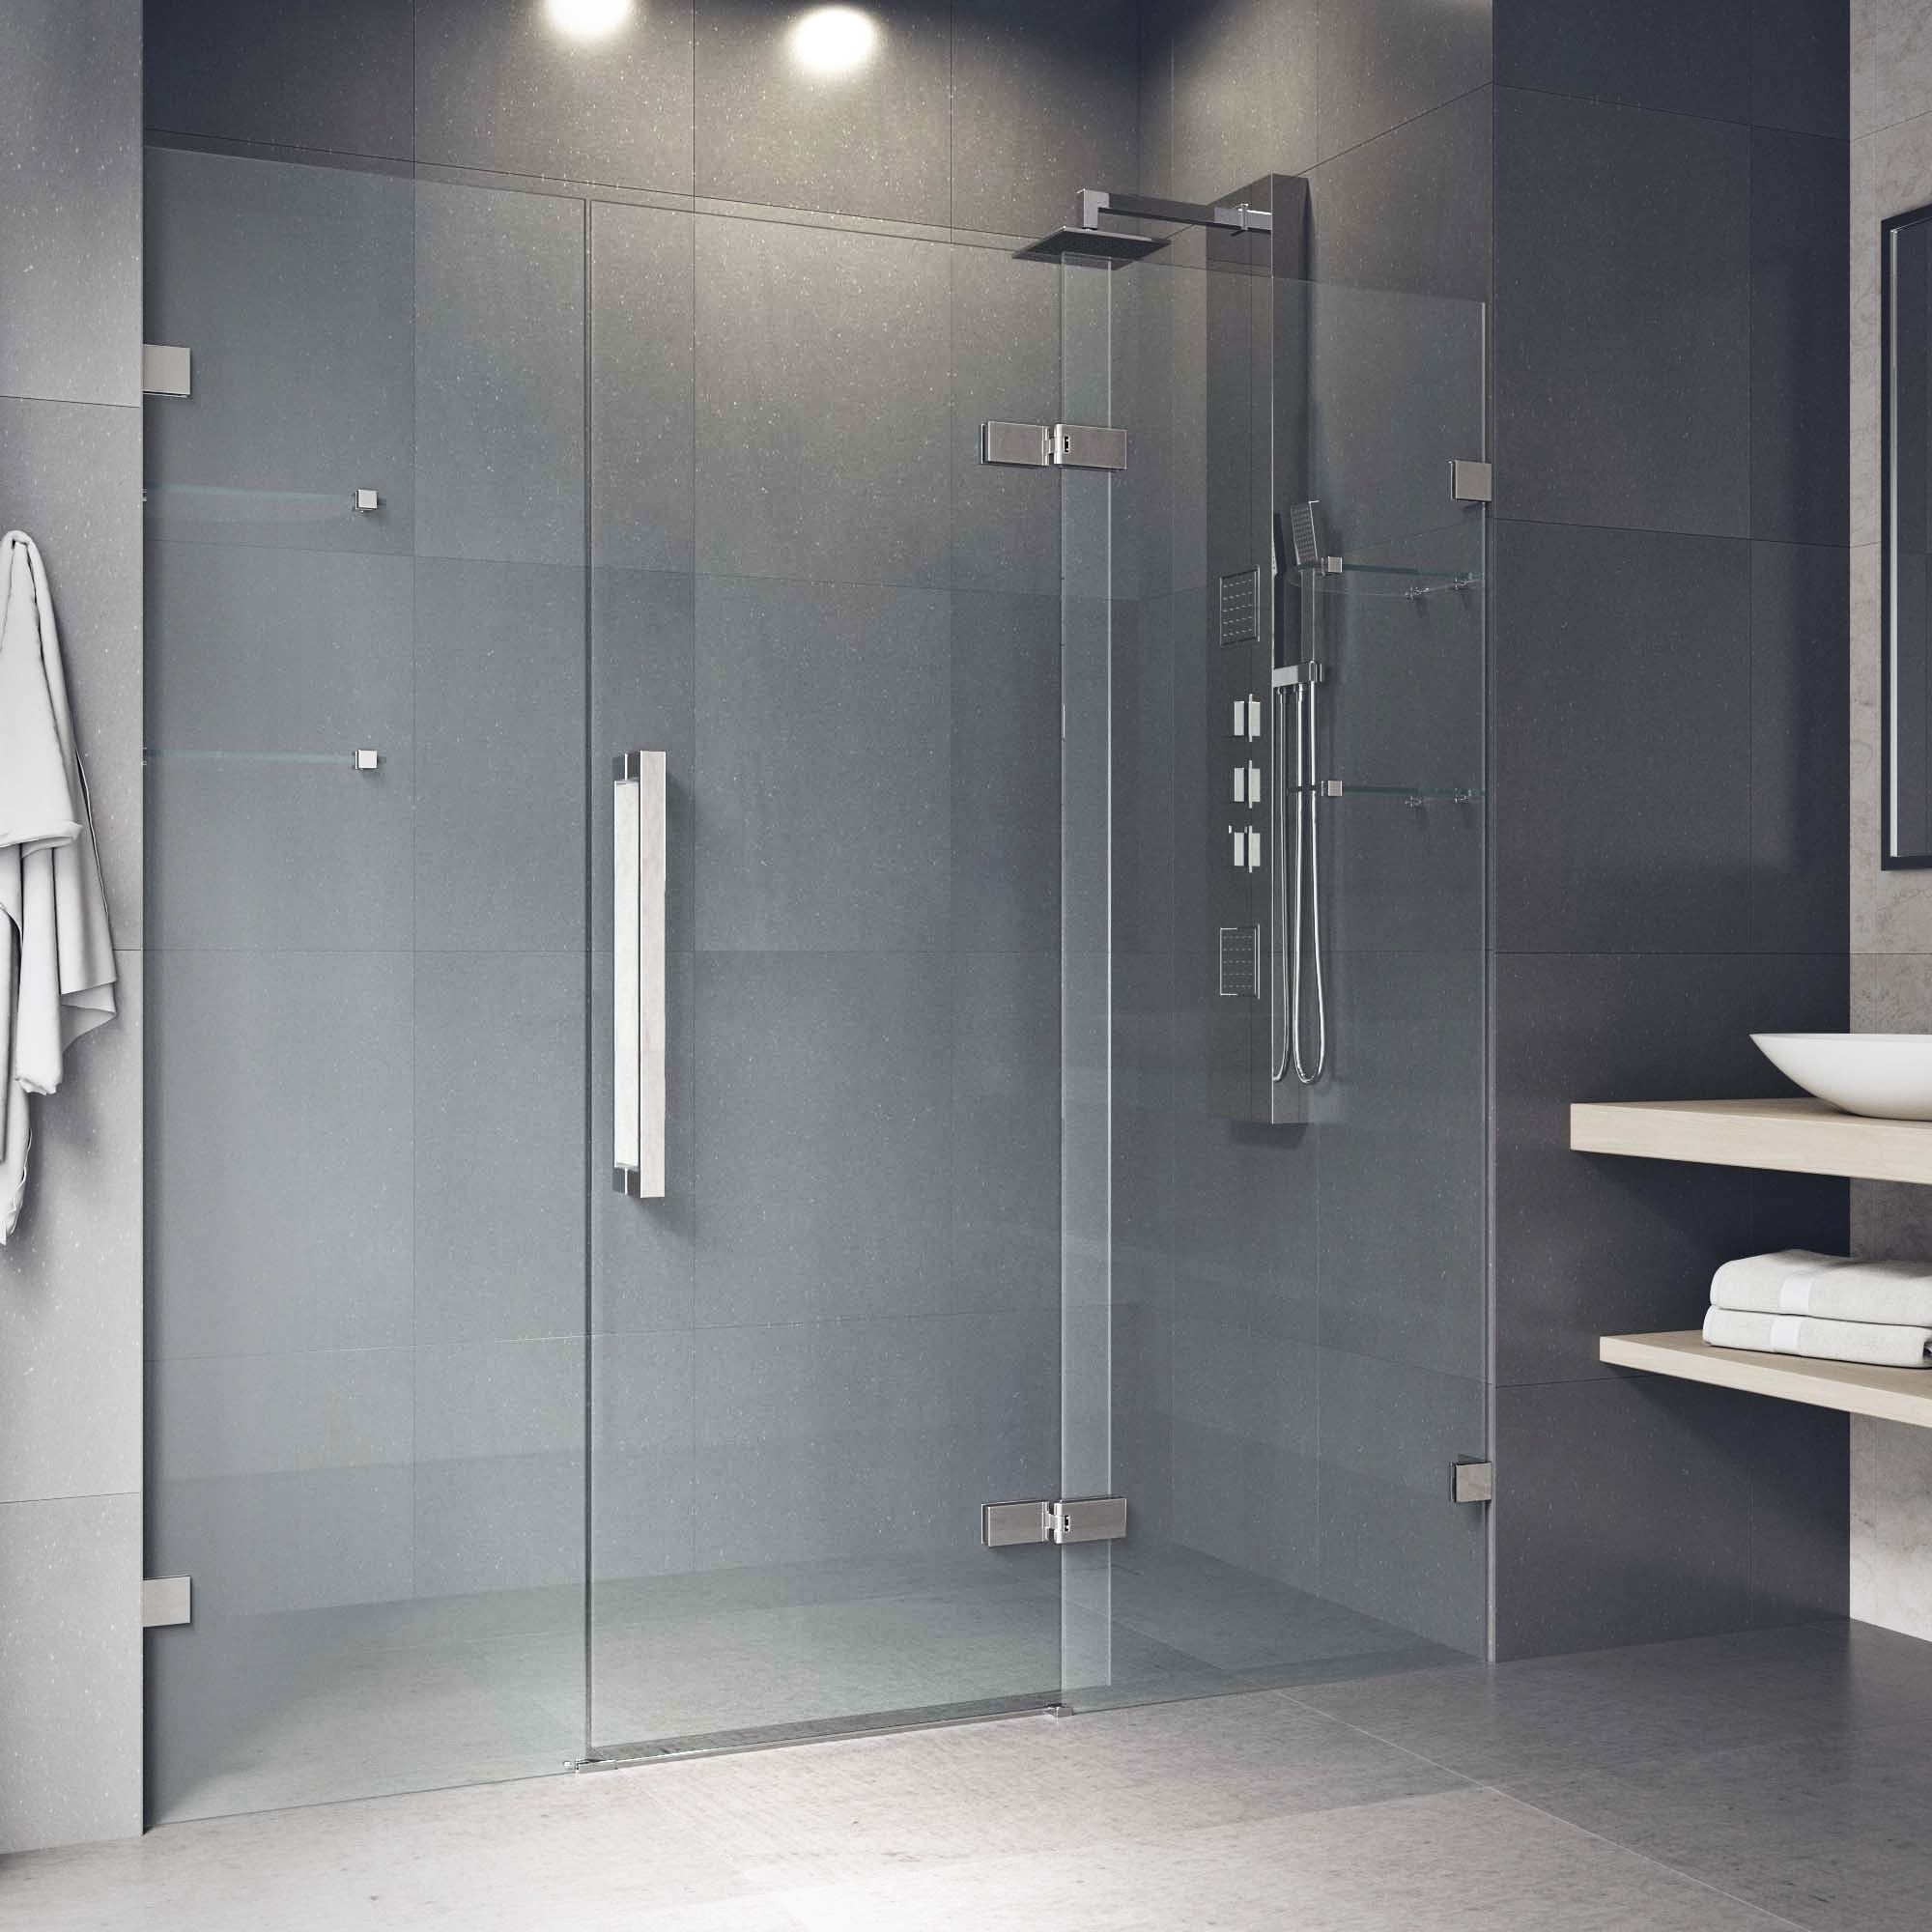 Vigo Seneca Clear 72 Inch Adjustable Frameless Hinged Shower Door